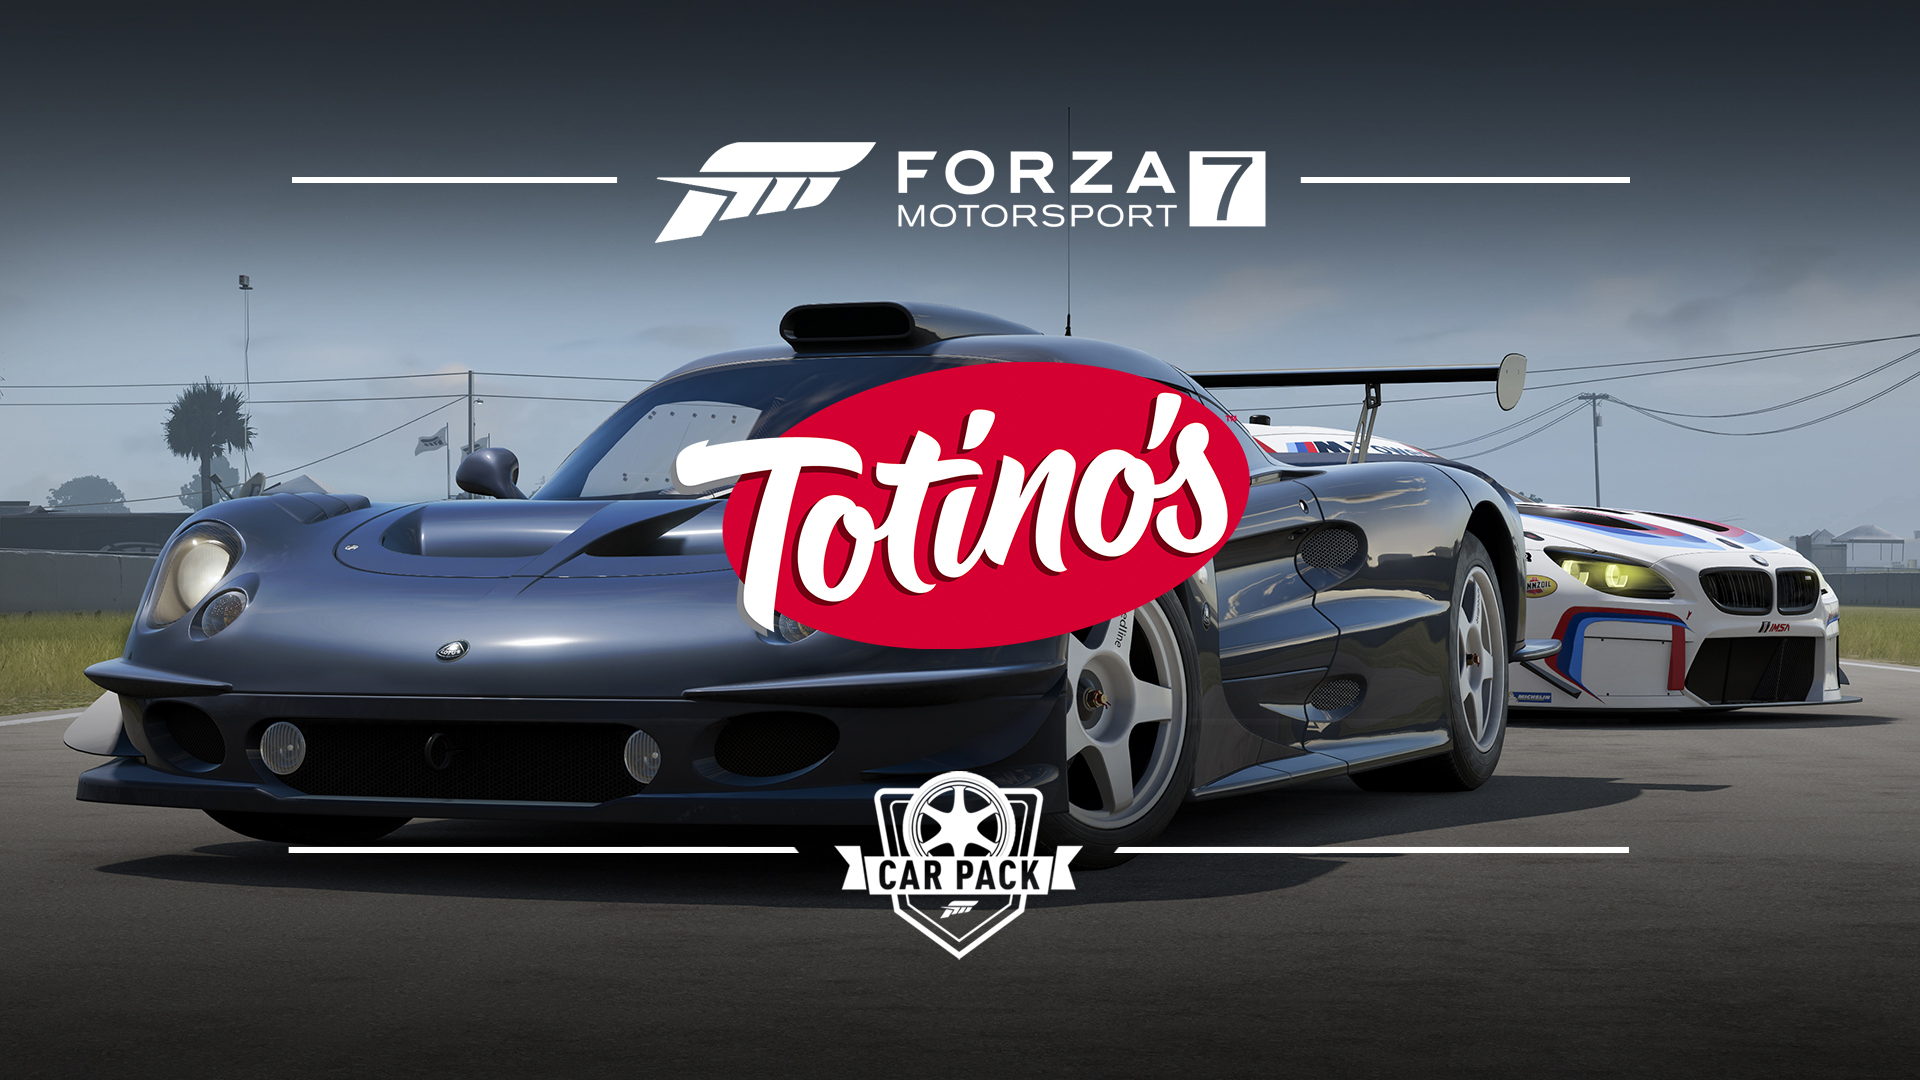 Forza Motorsport 7's Totino's Car Pack revealed